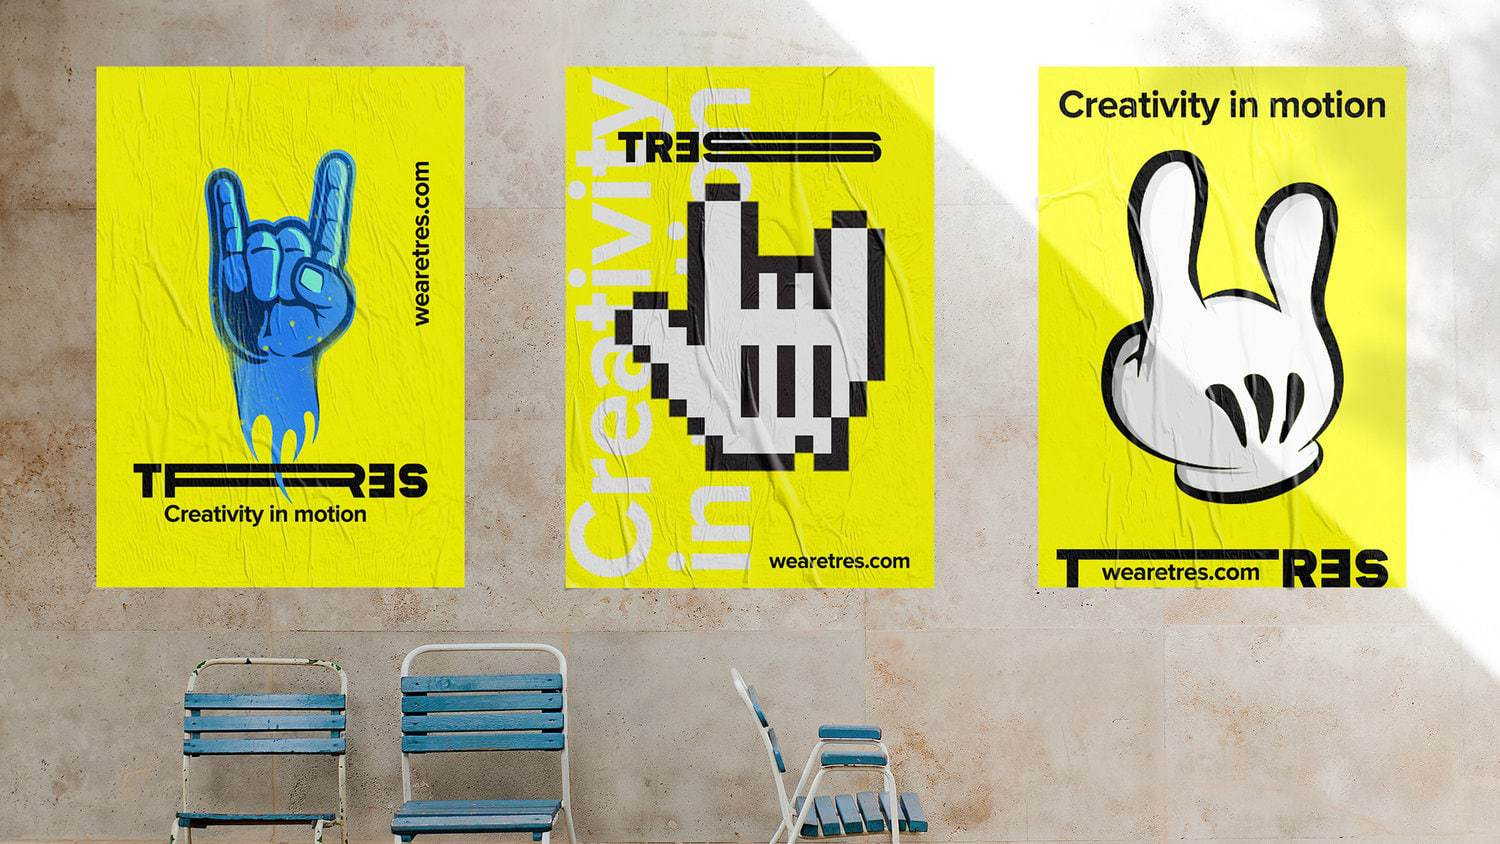 Corporate Branding for Audiovisual Production Studio: Tres